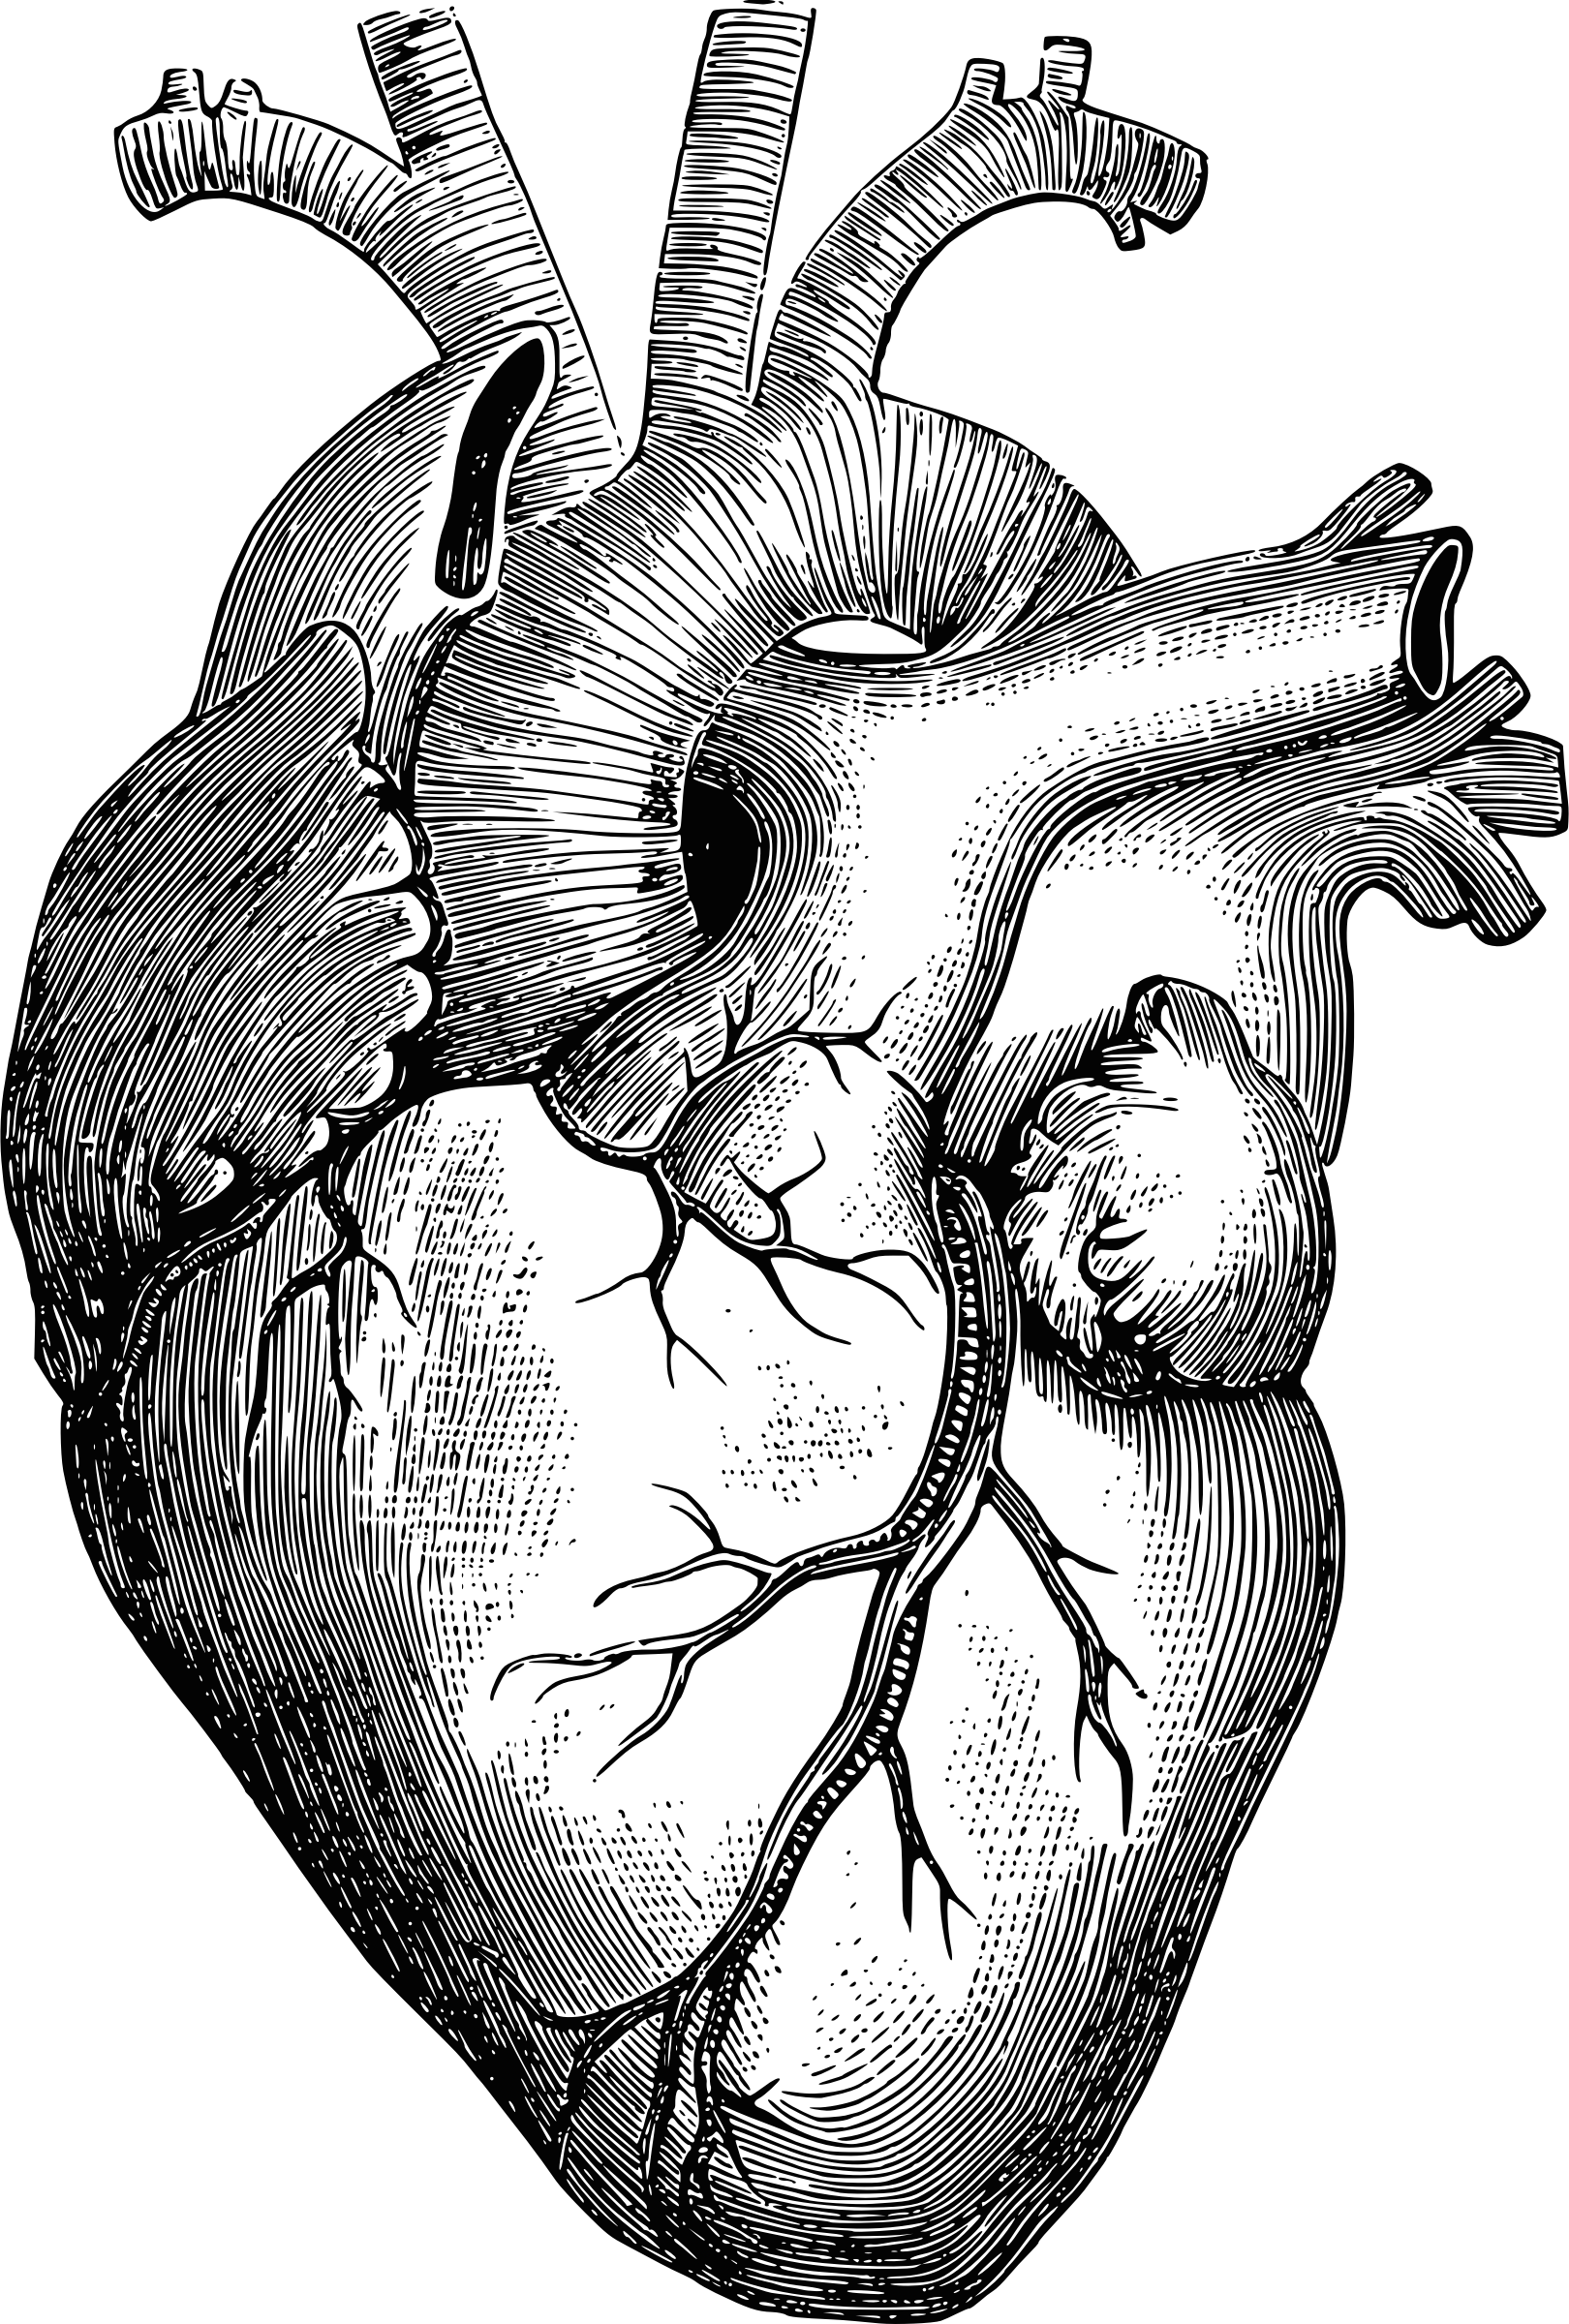 Free Anatomical Heart Pictures, Download Free Clip Art, Free.